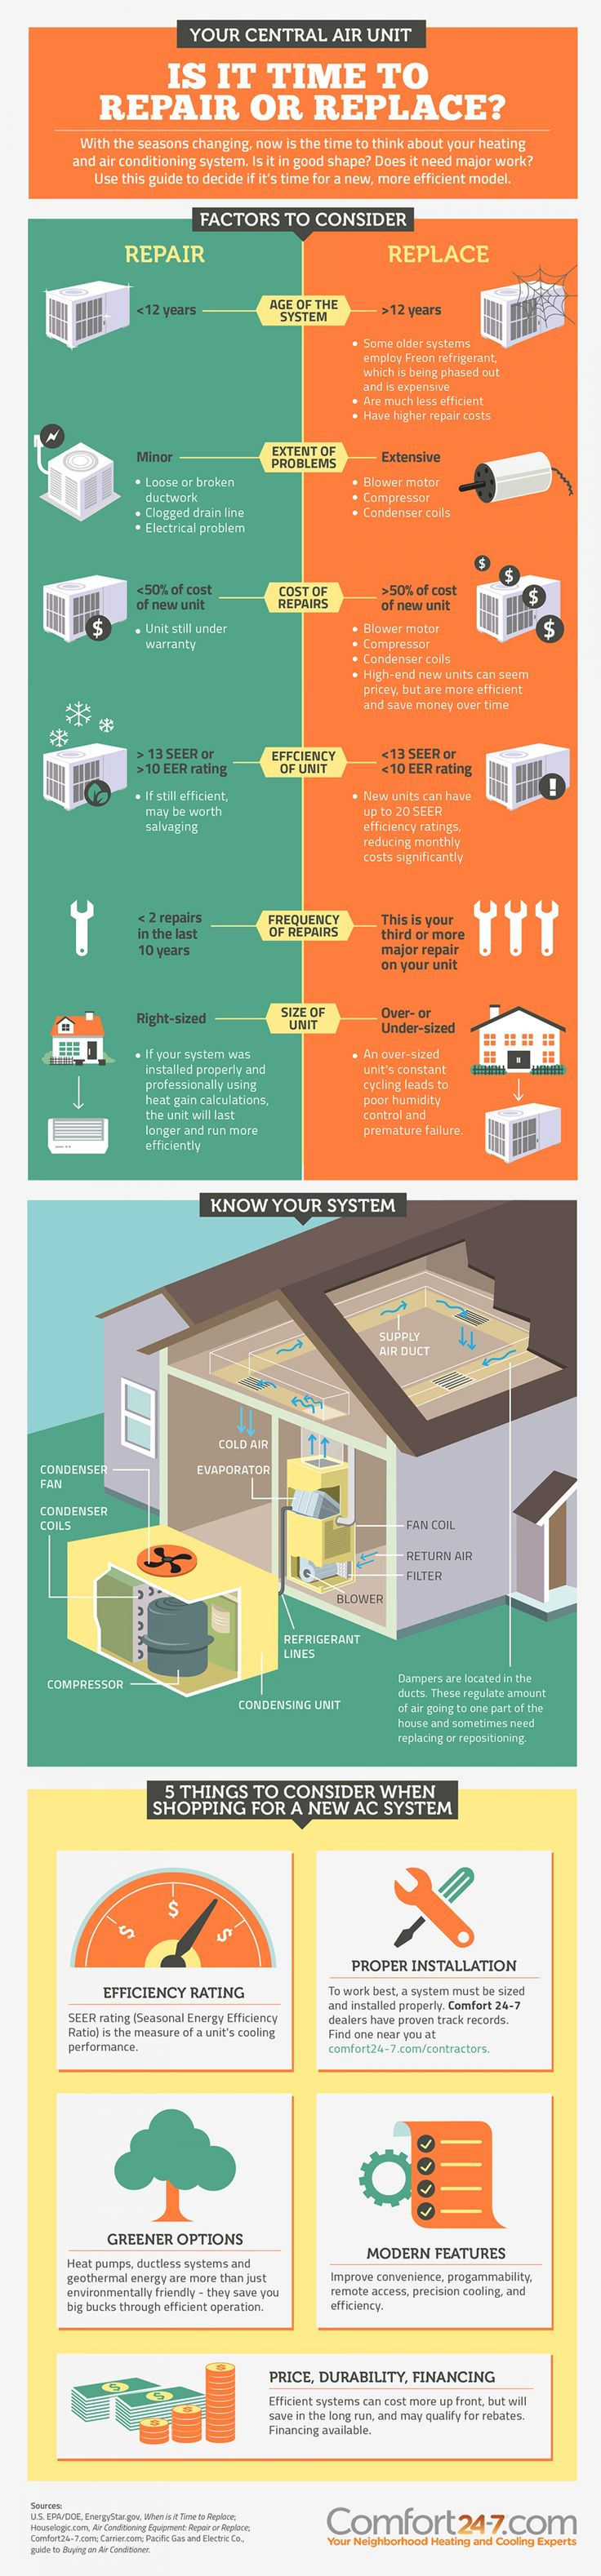 Average cost of new furnace and ac for home - Is It Time To Repair Or Replace Air Conditioning System Infographic